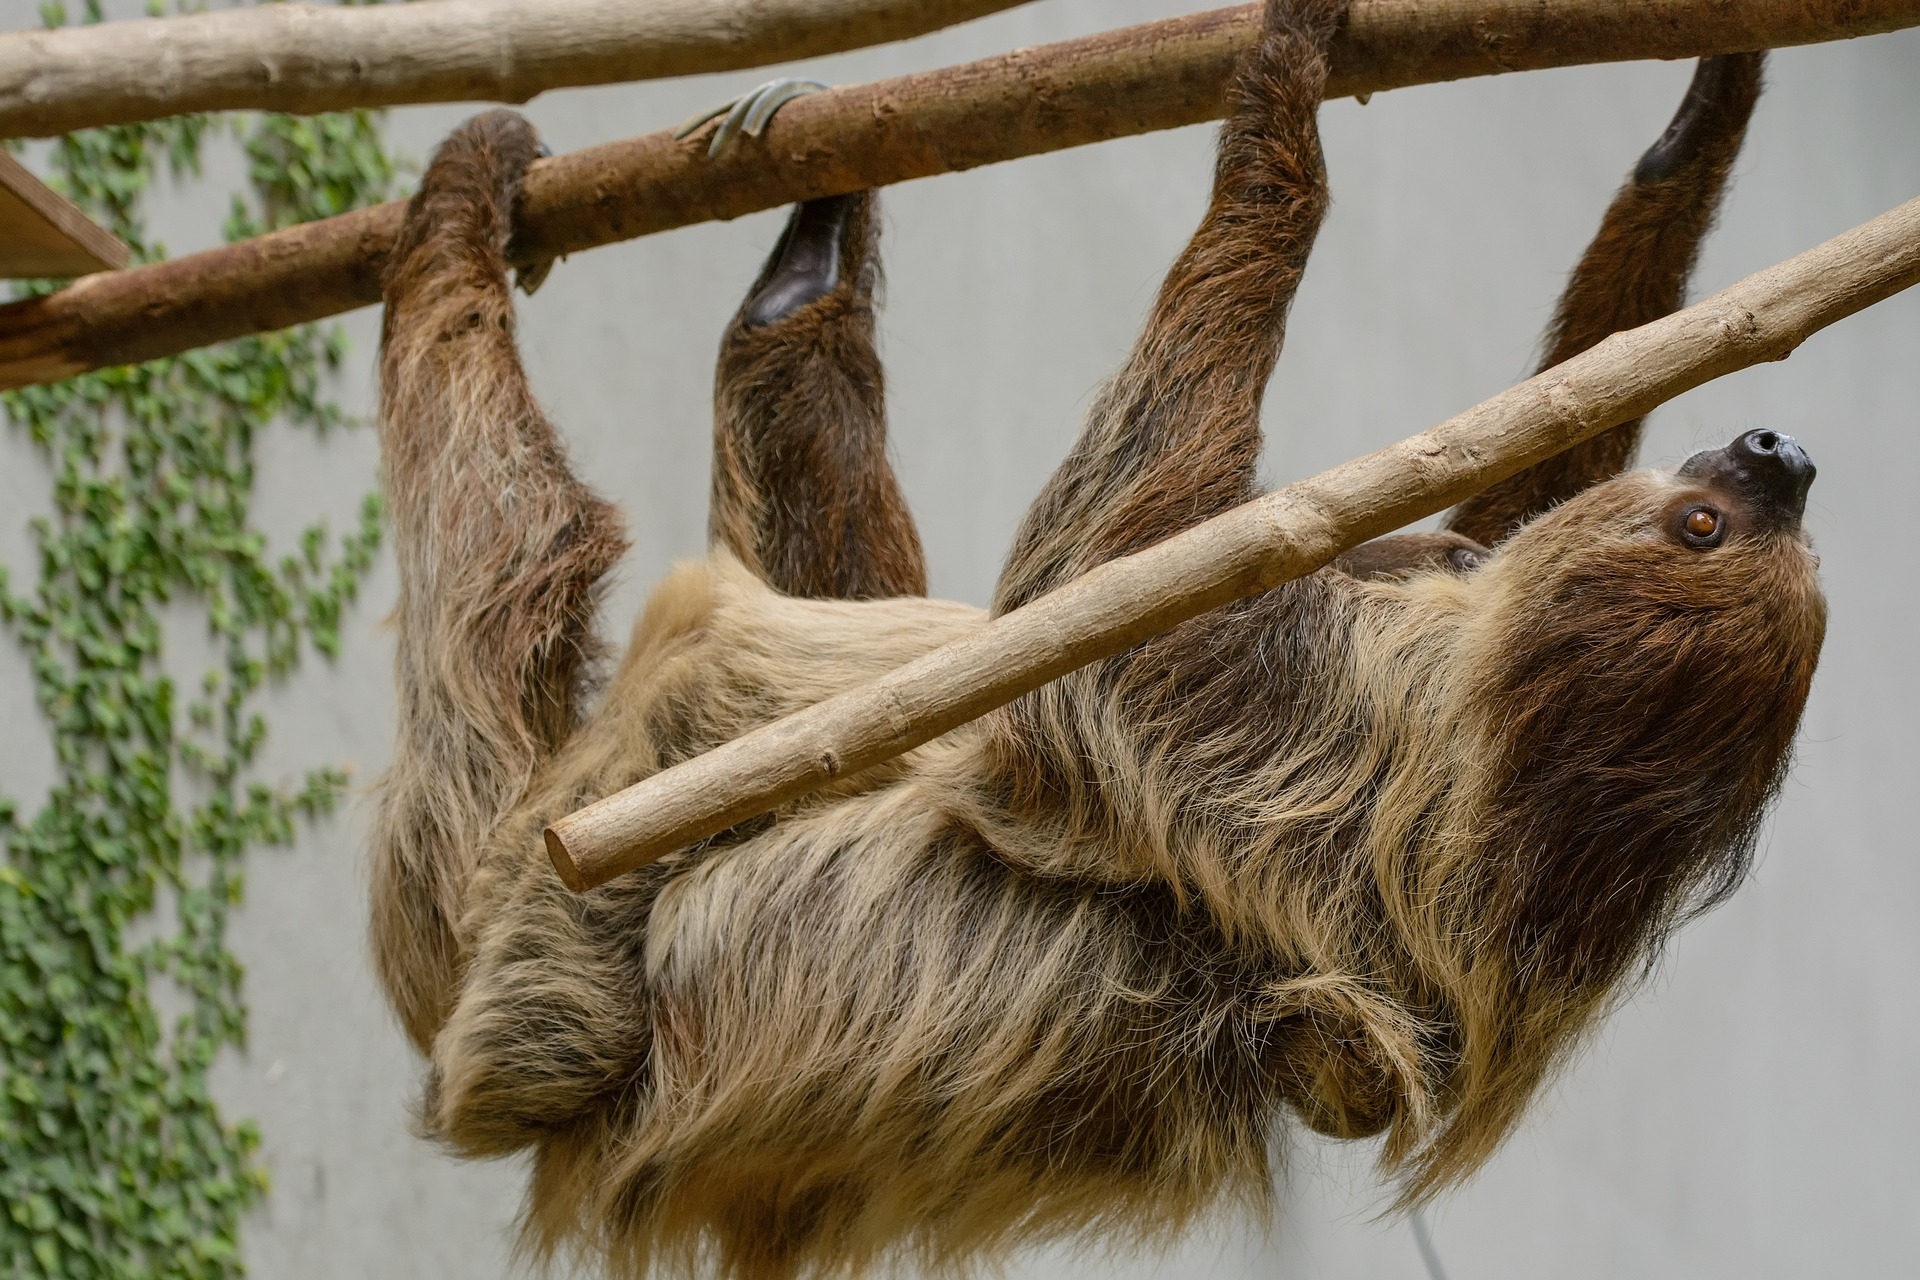 Sloths are slow-moving mammals that spend their lives hanging about in the trees of Central and South America.